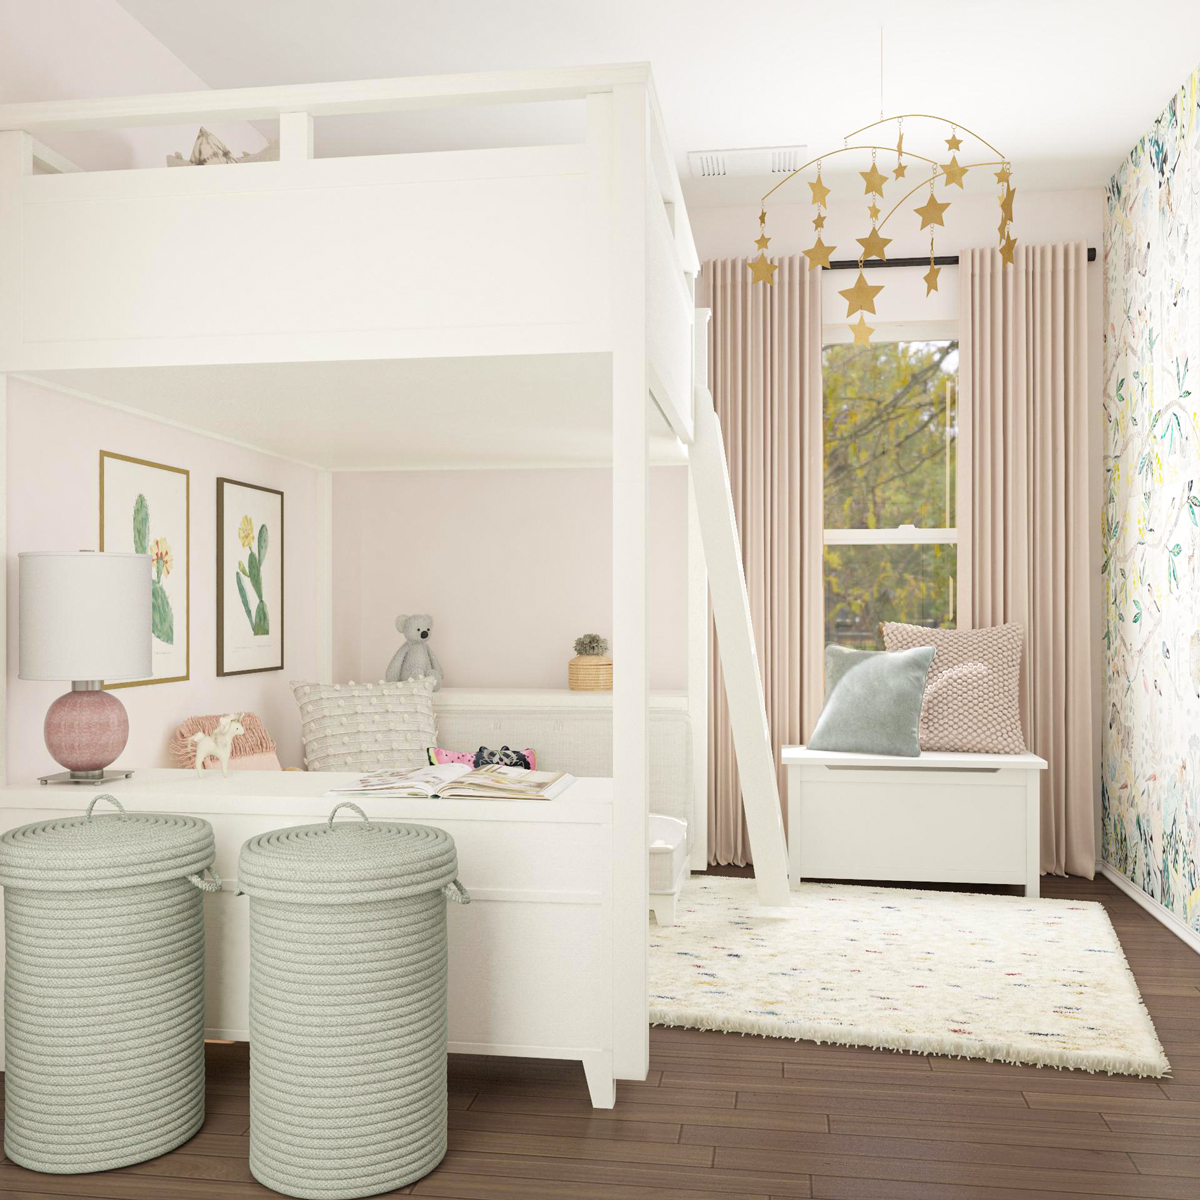 shared kids bedroom layout ideas 10